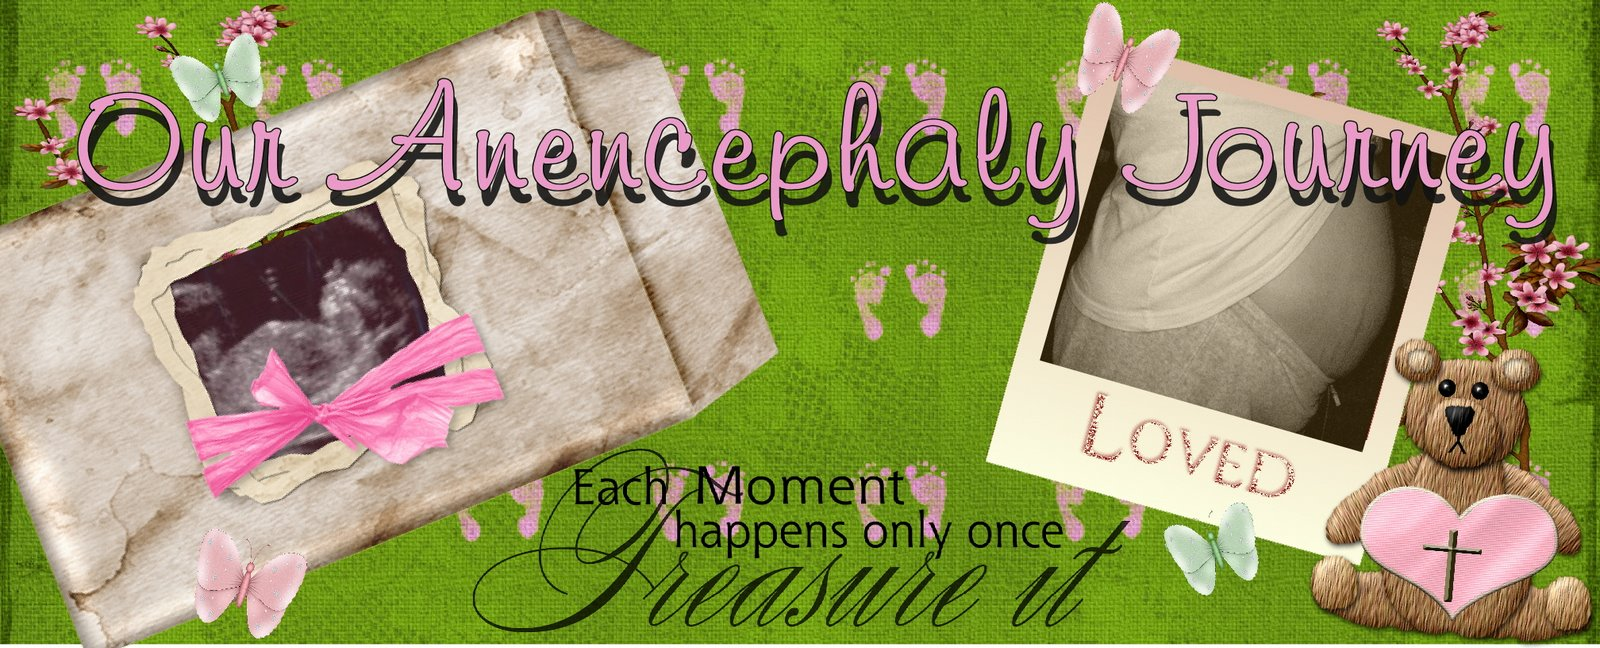 Our Anencephaly Journey